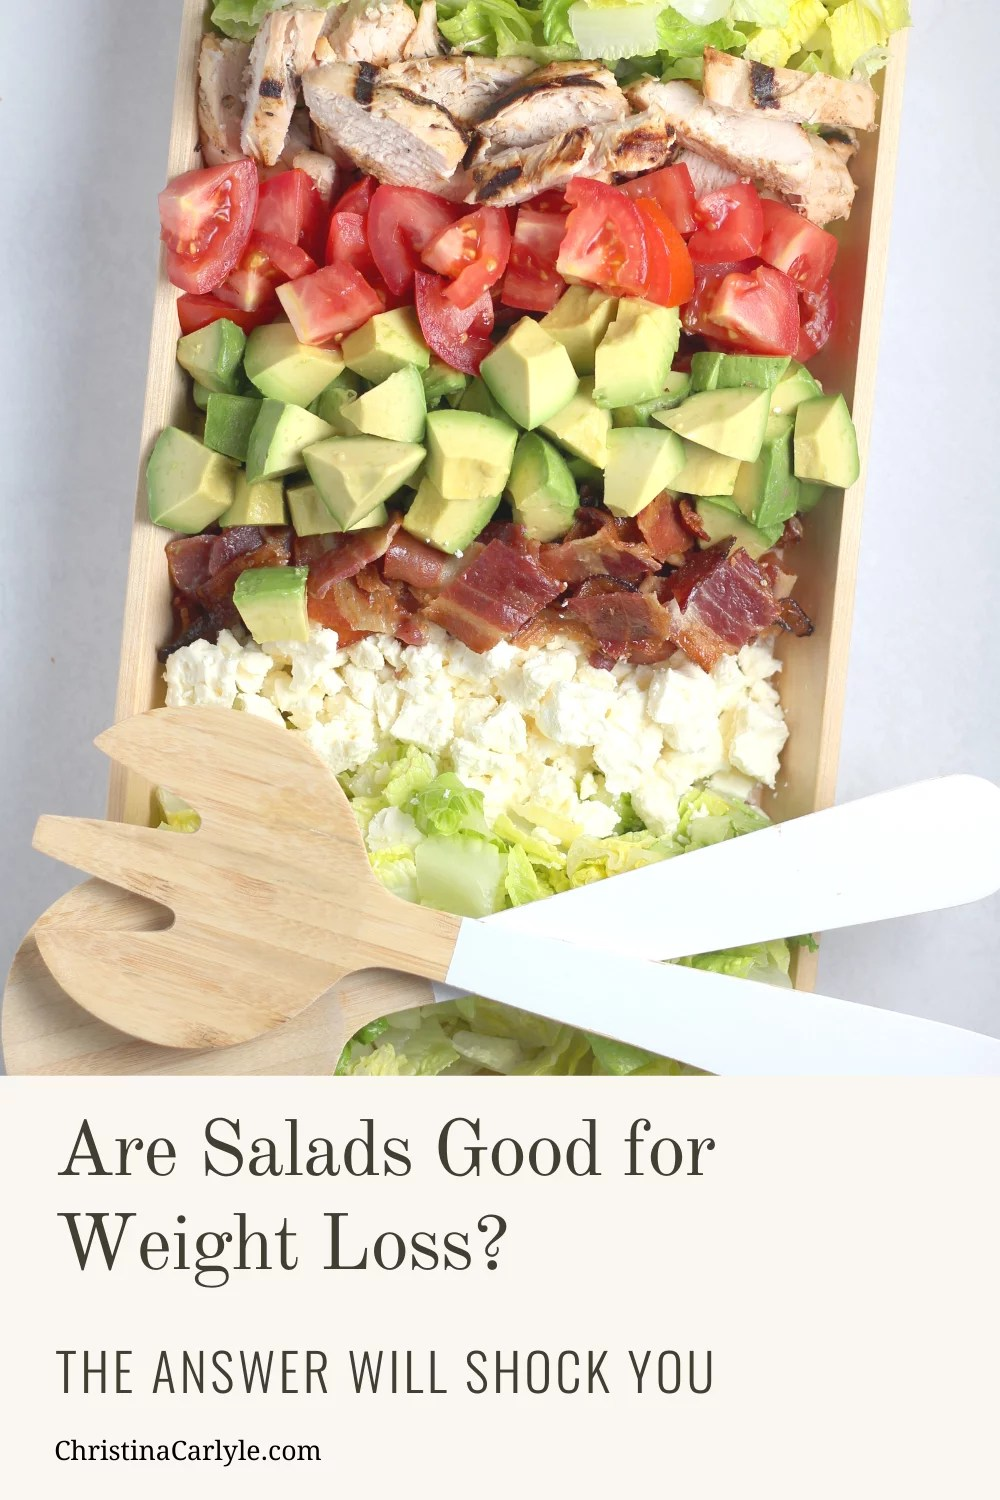 Are Salads Good for Weight Loss infographic